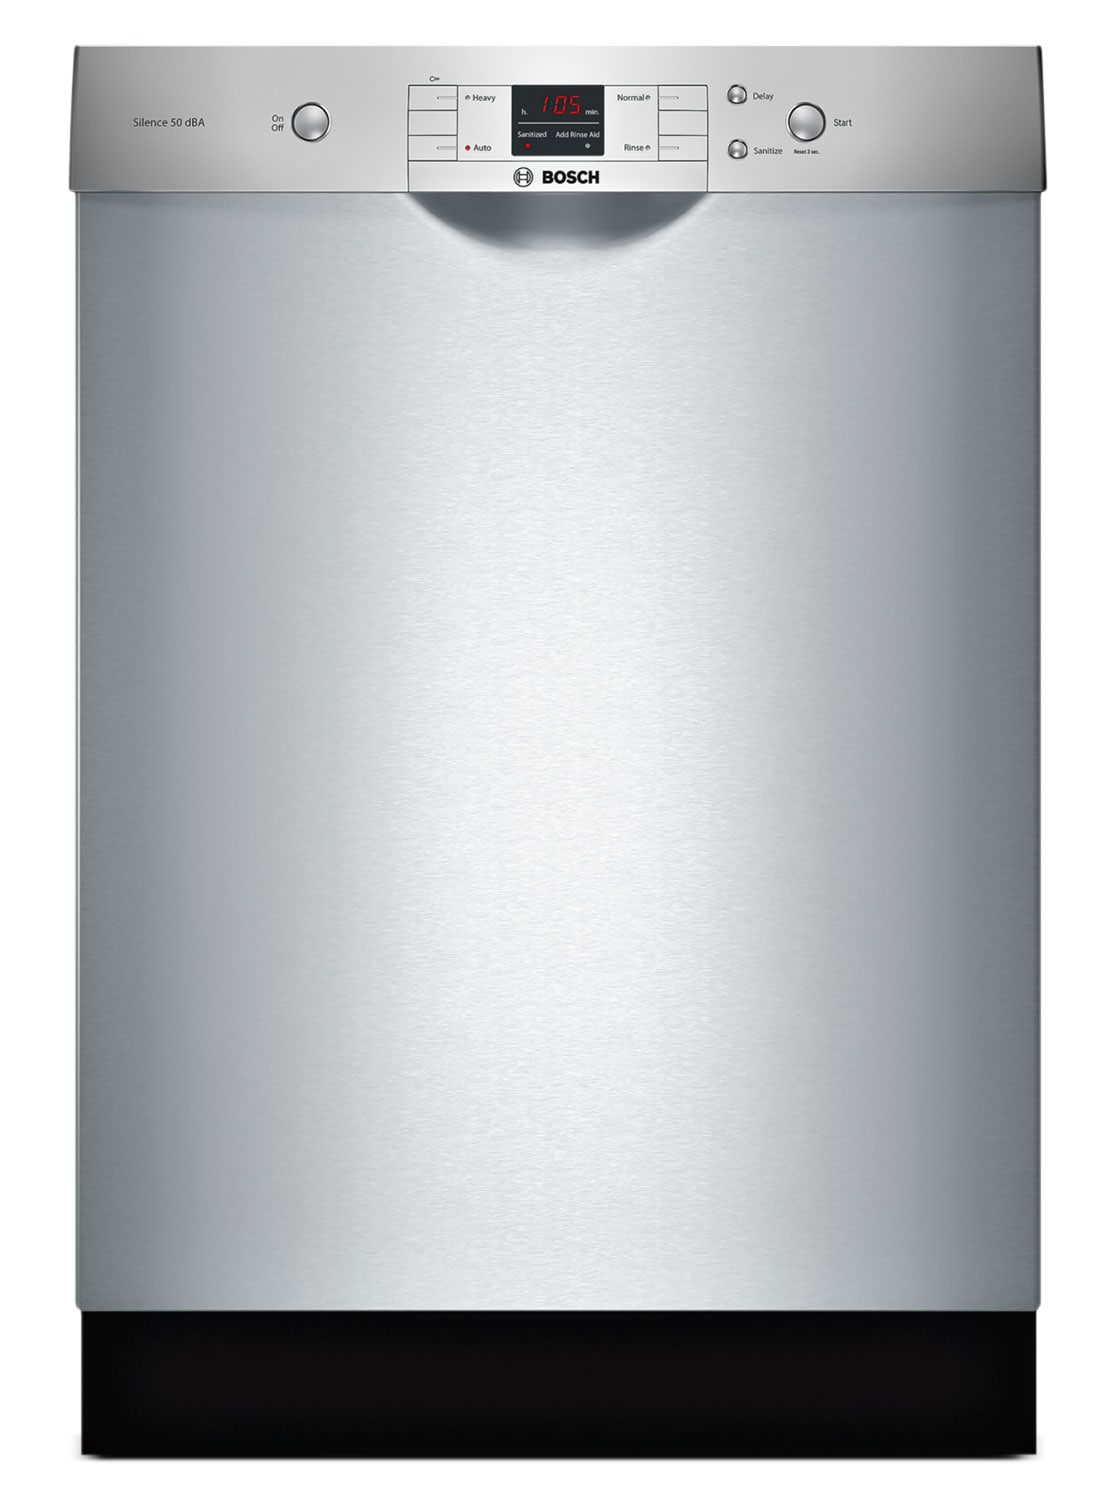 Bosch 300 Series Built-In Dishwasher – Stainless Steel